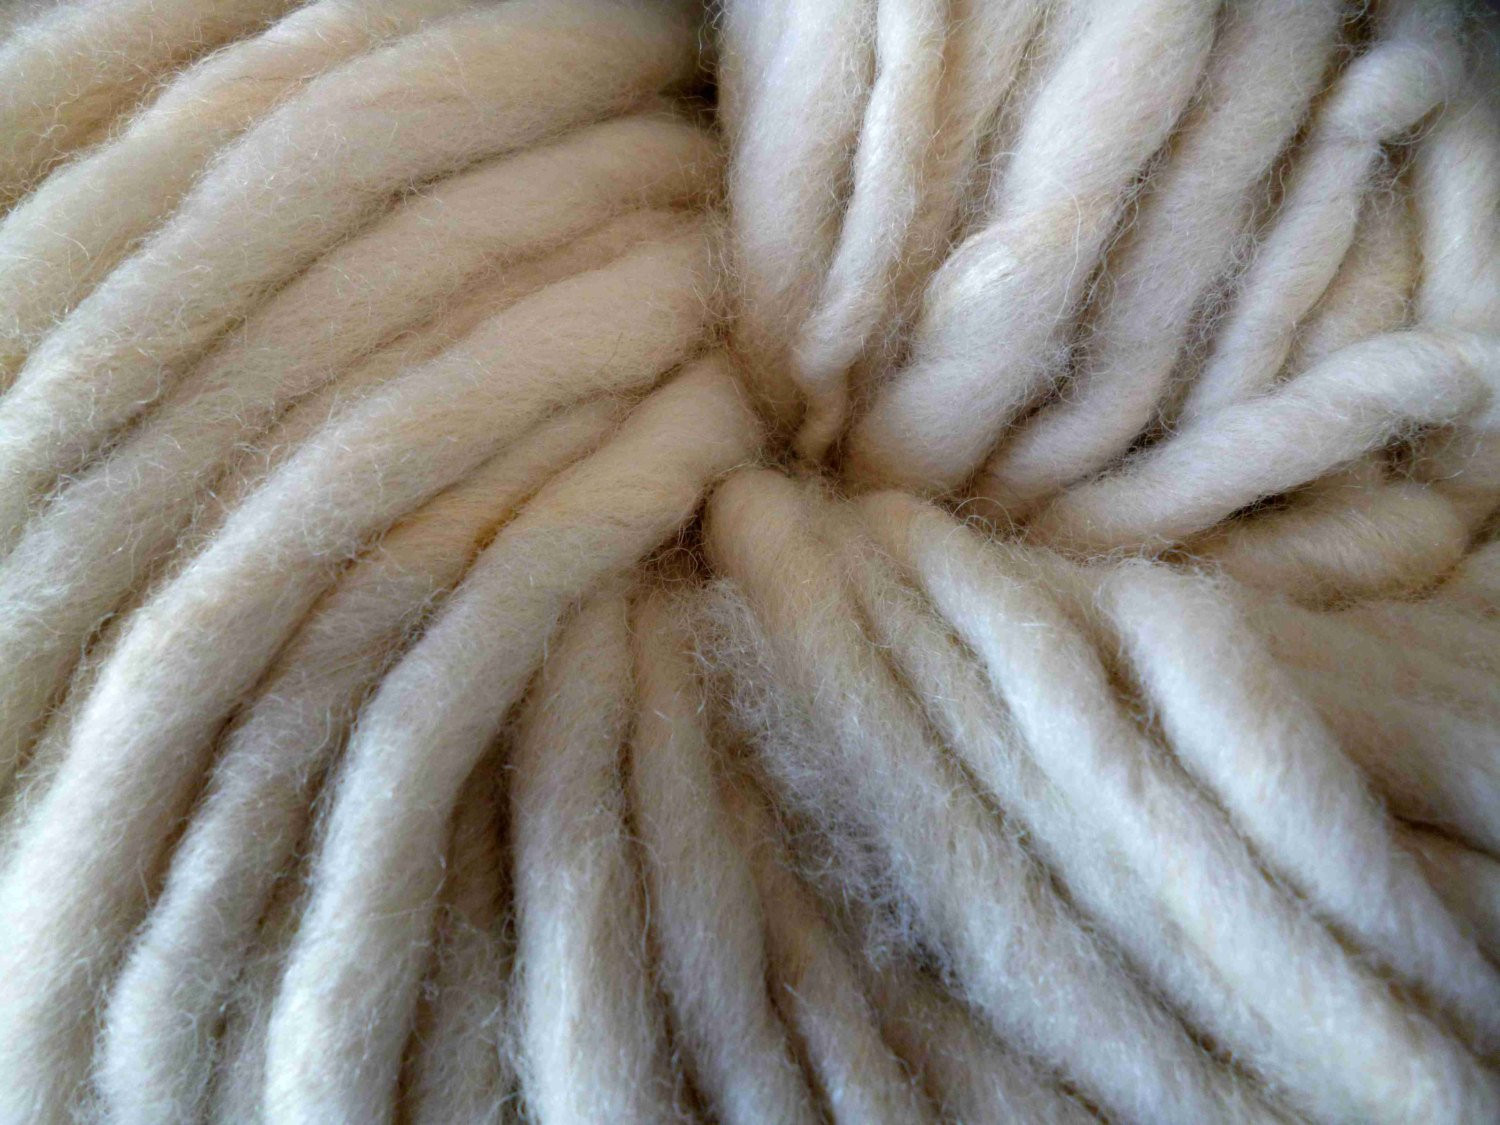 Super Chunky Yarn Inspirational Super Bulky Yarn Super Chunky Yarn Handspun Yarn Wool Yarn Of Great 49 Pictures Super Chunky Yarn